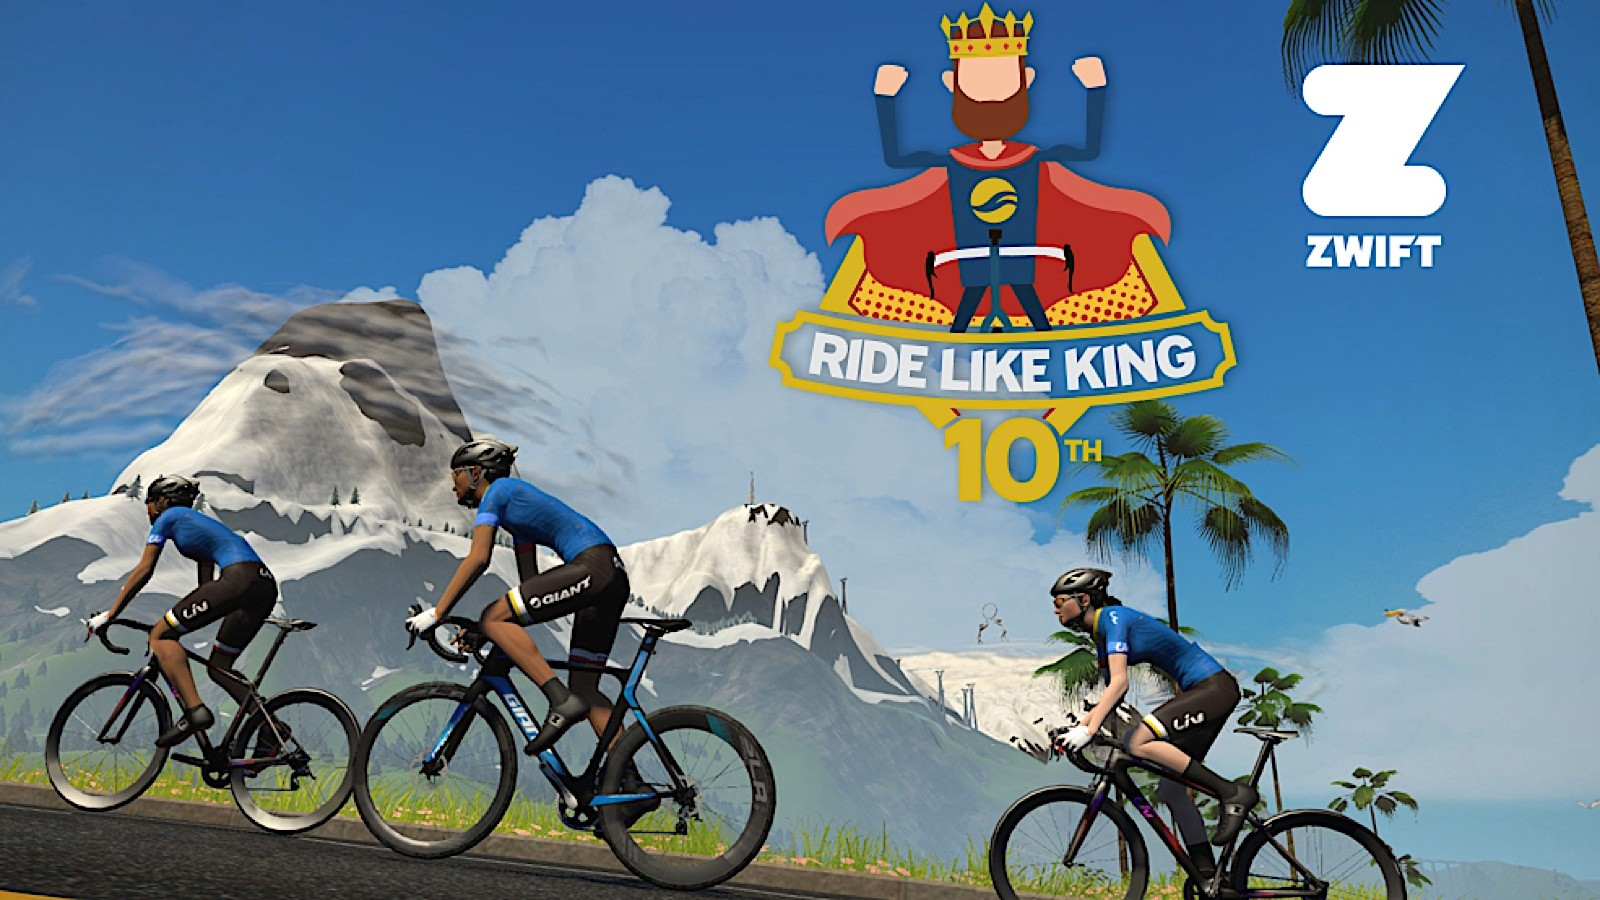 10 years ago at age 73, Giant founder King Liu did a big ride. The tradition continues today